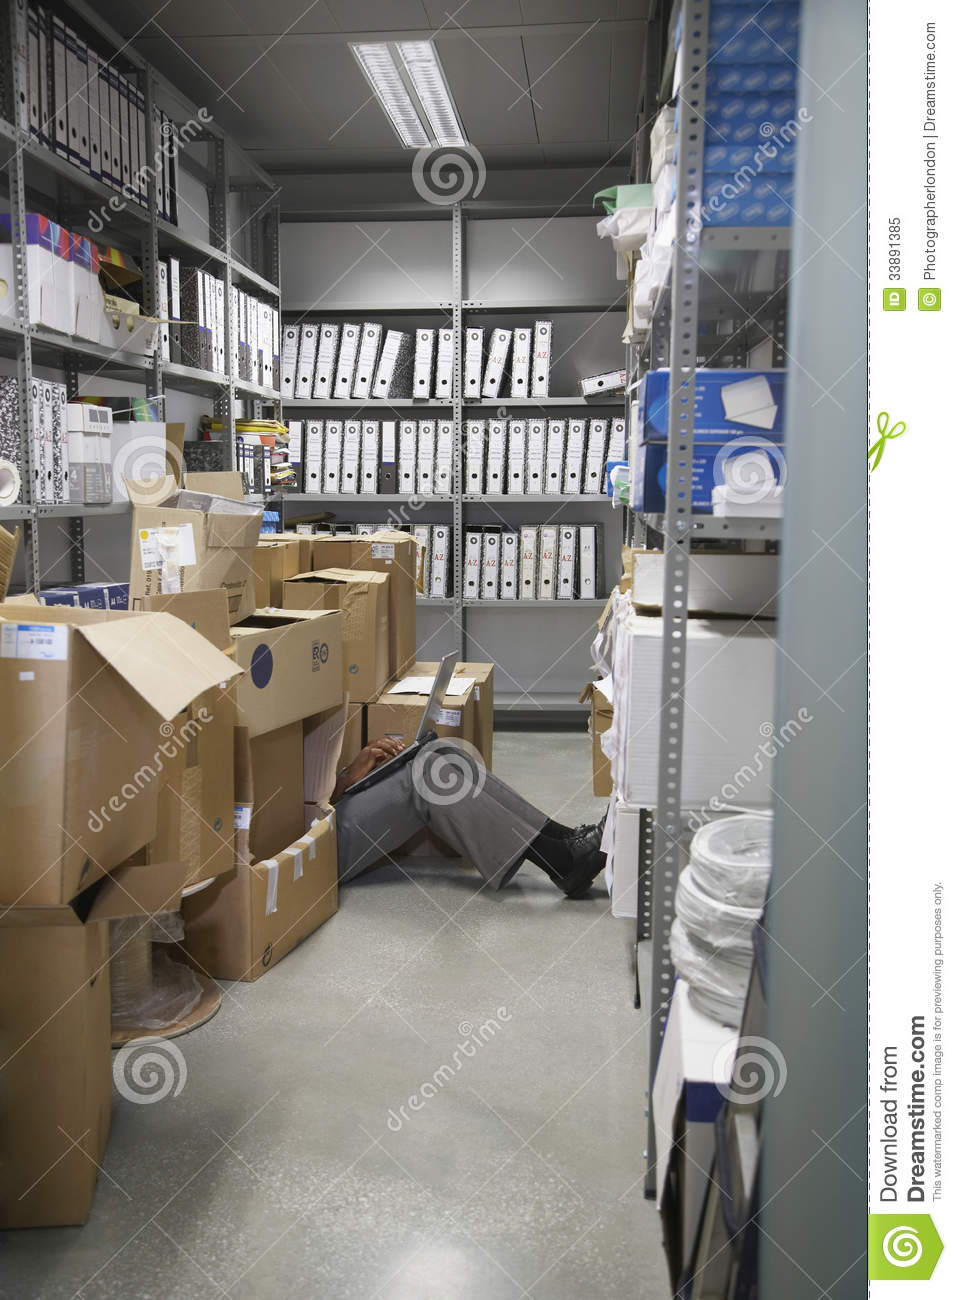 Lowsection Of Man With Laptop On Floor In Storage Room